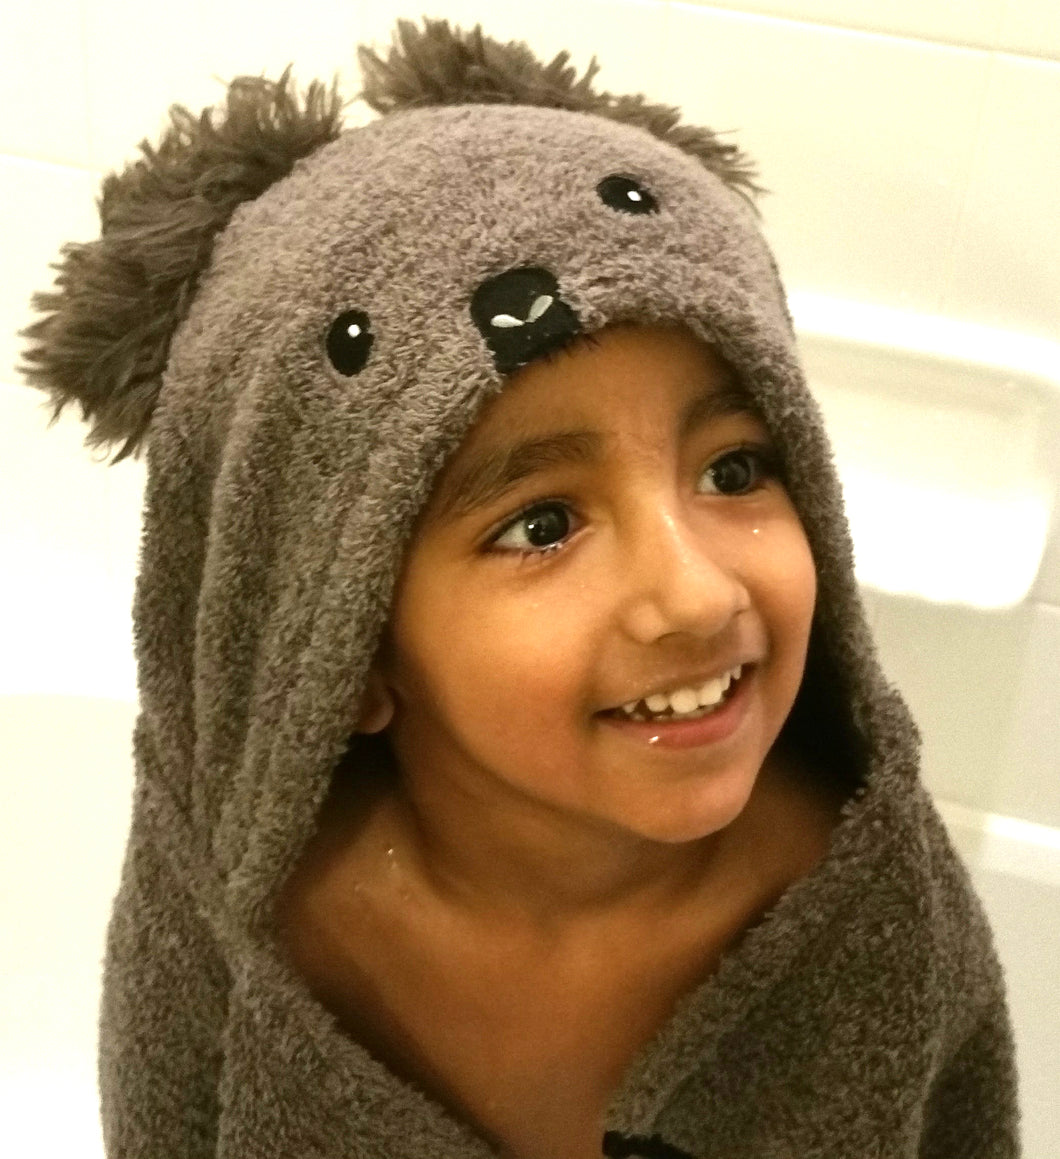 Koala Hooded Luxury Bath Towel Gift Set for Kids, Toddlers and ...